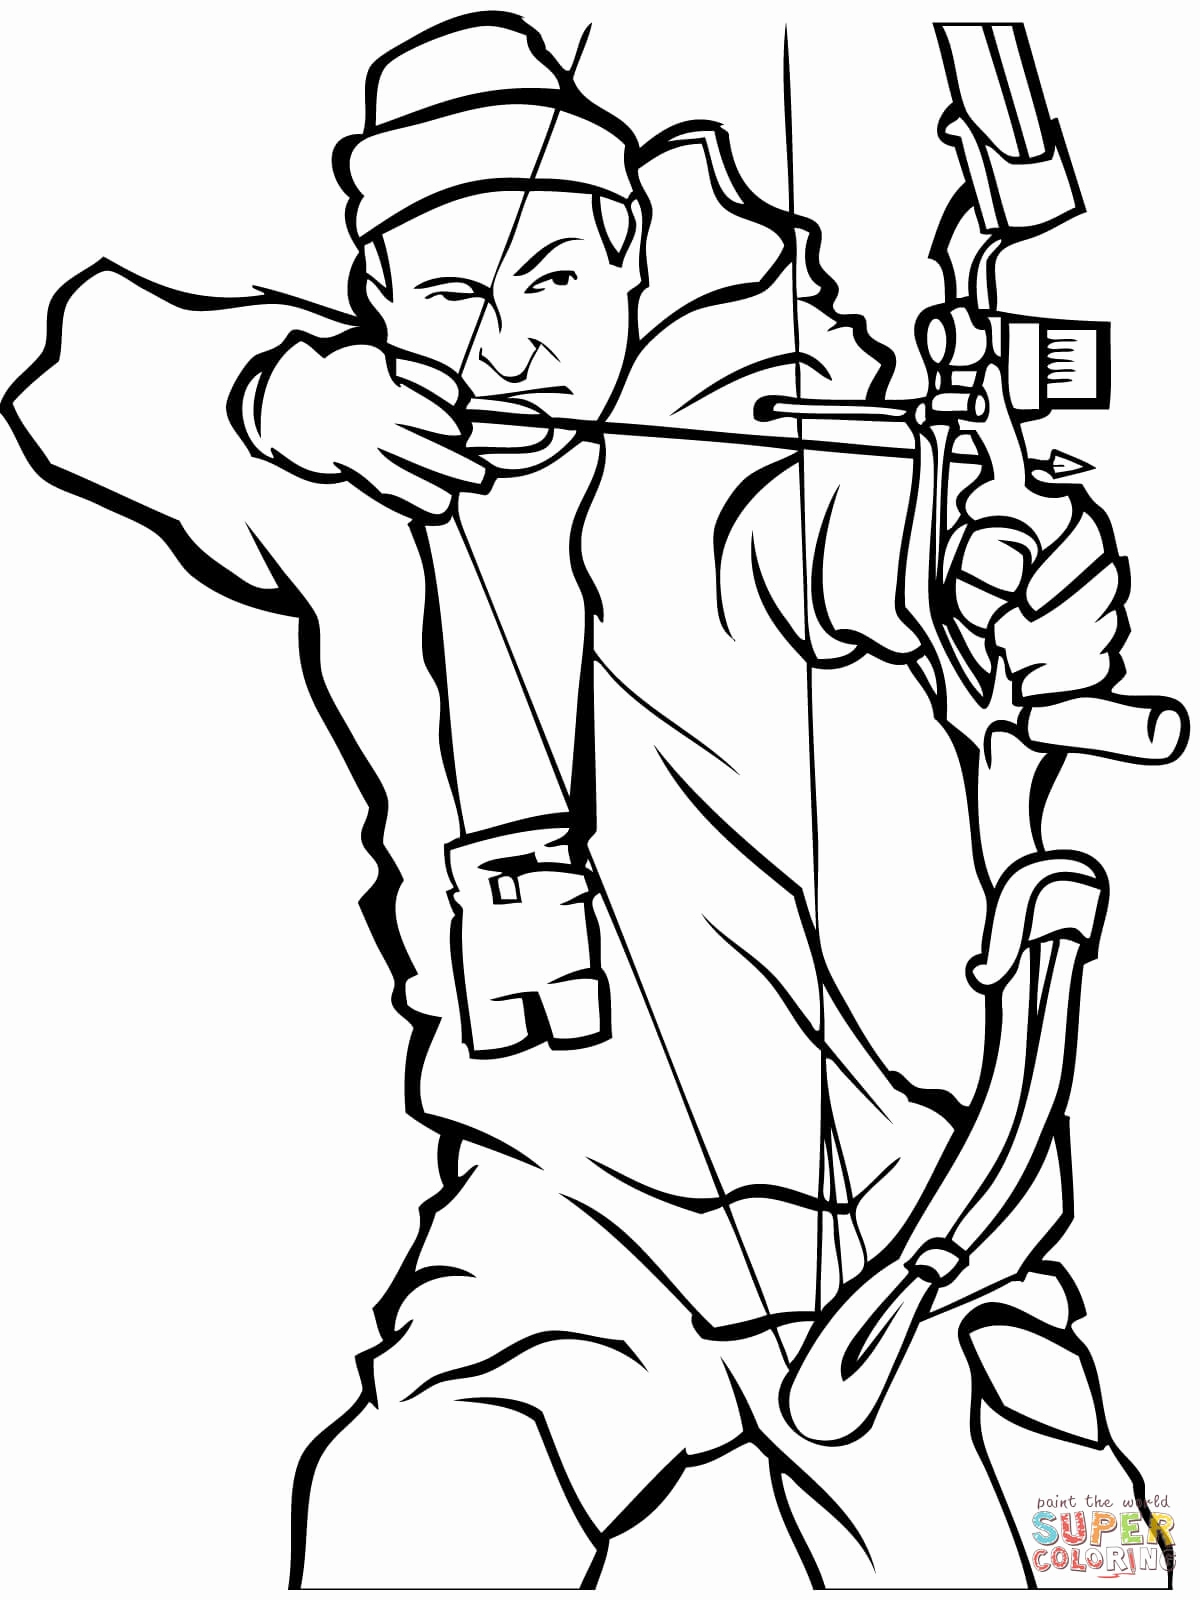 1200x1600 Bow And Arrow Coloring Pages Image Bows Coloring Pages Ebcs